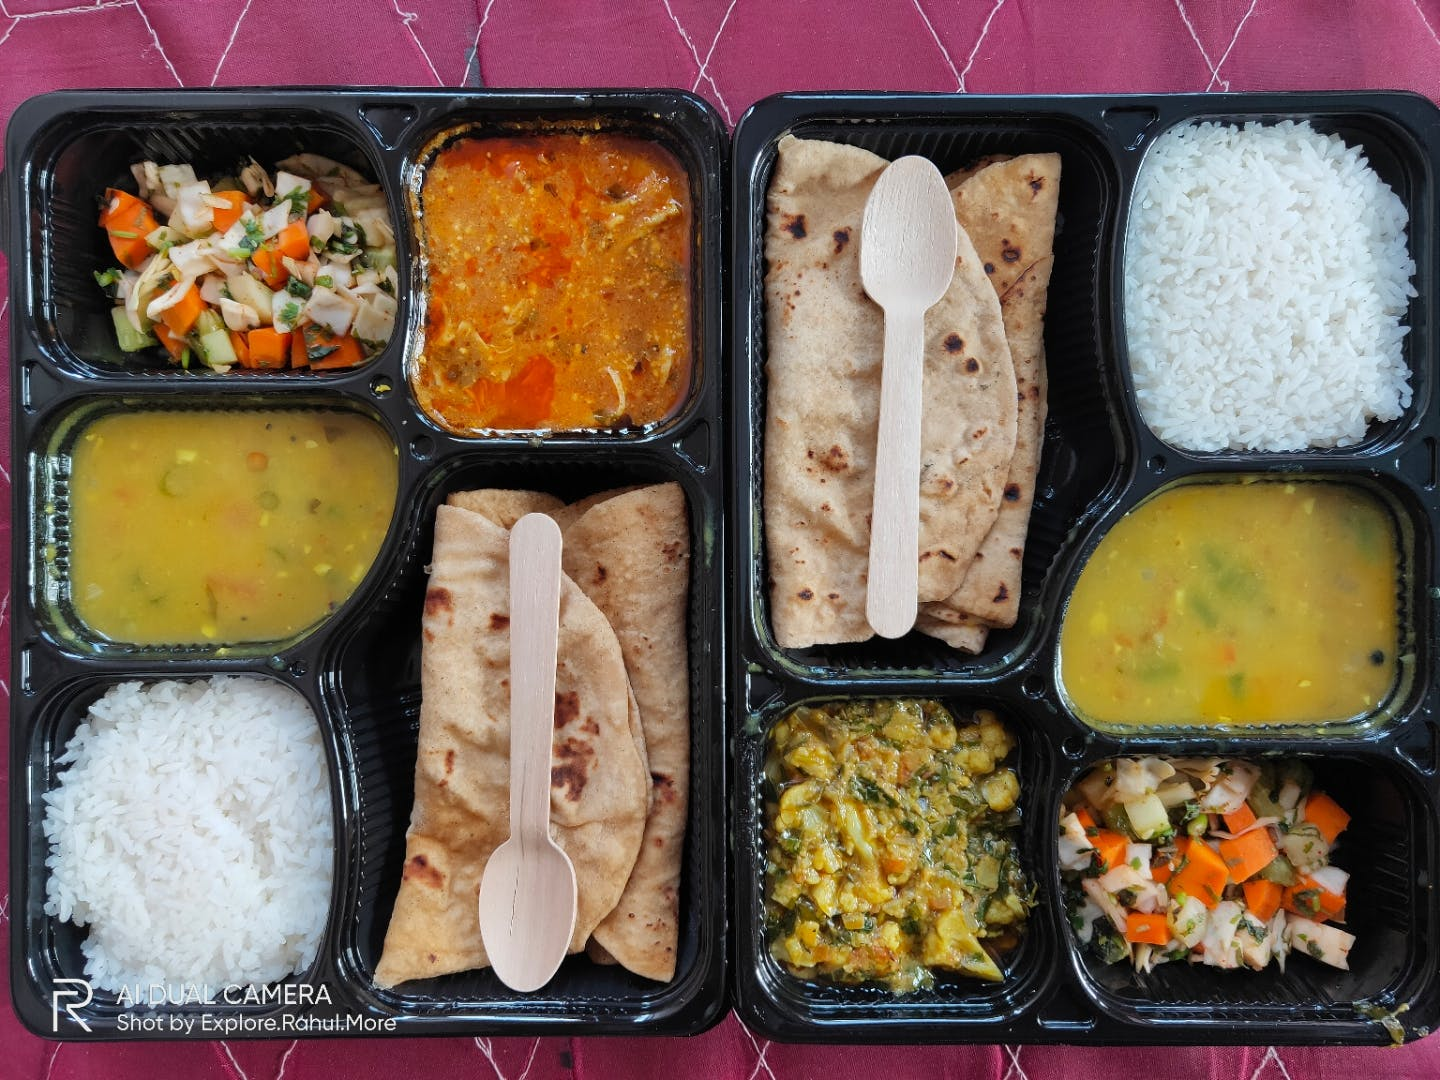 Dish,Food,Cuisine,Meal,Lunch,Steamed rice,Prepackaged meal,Ingredient,White rice,Comfort food